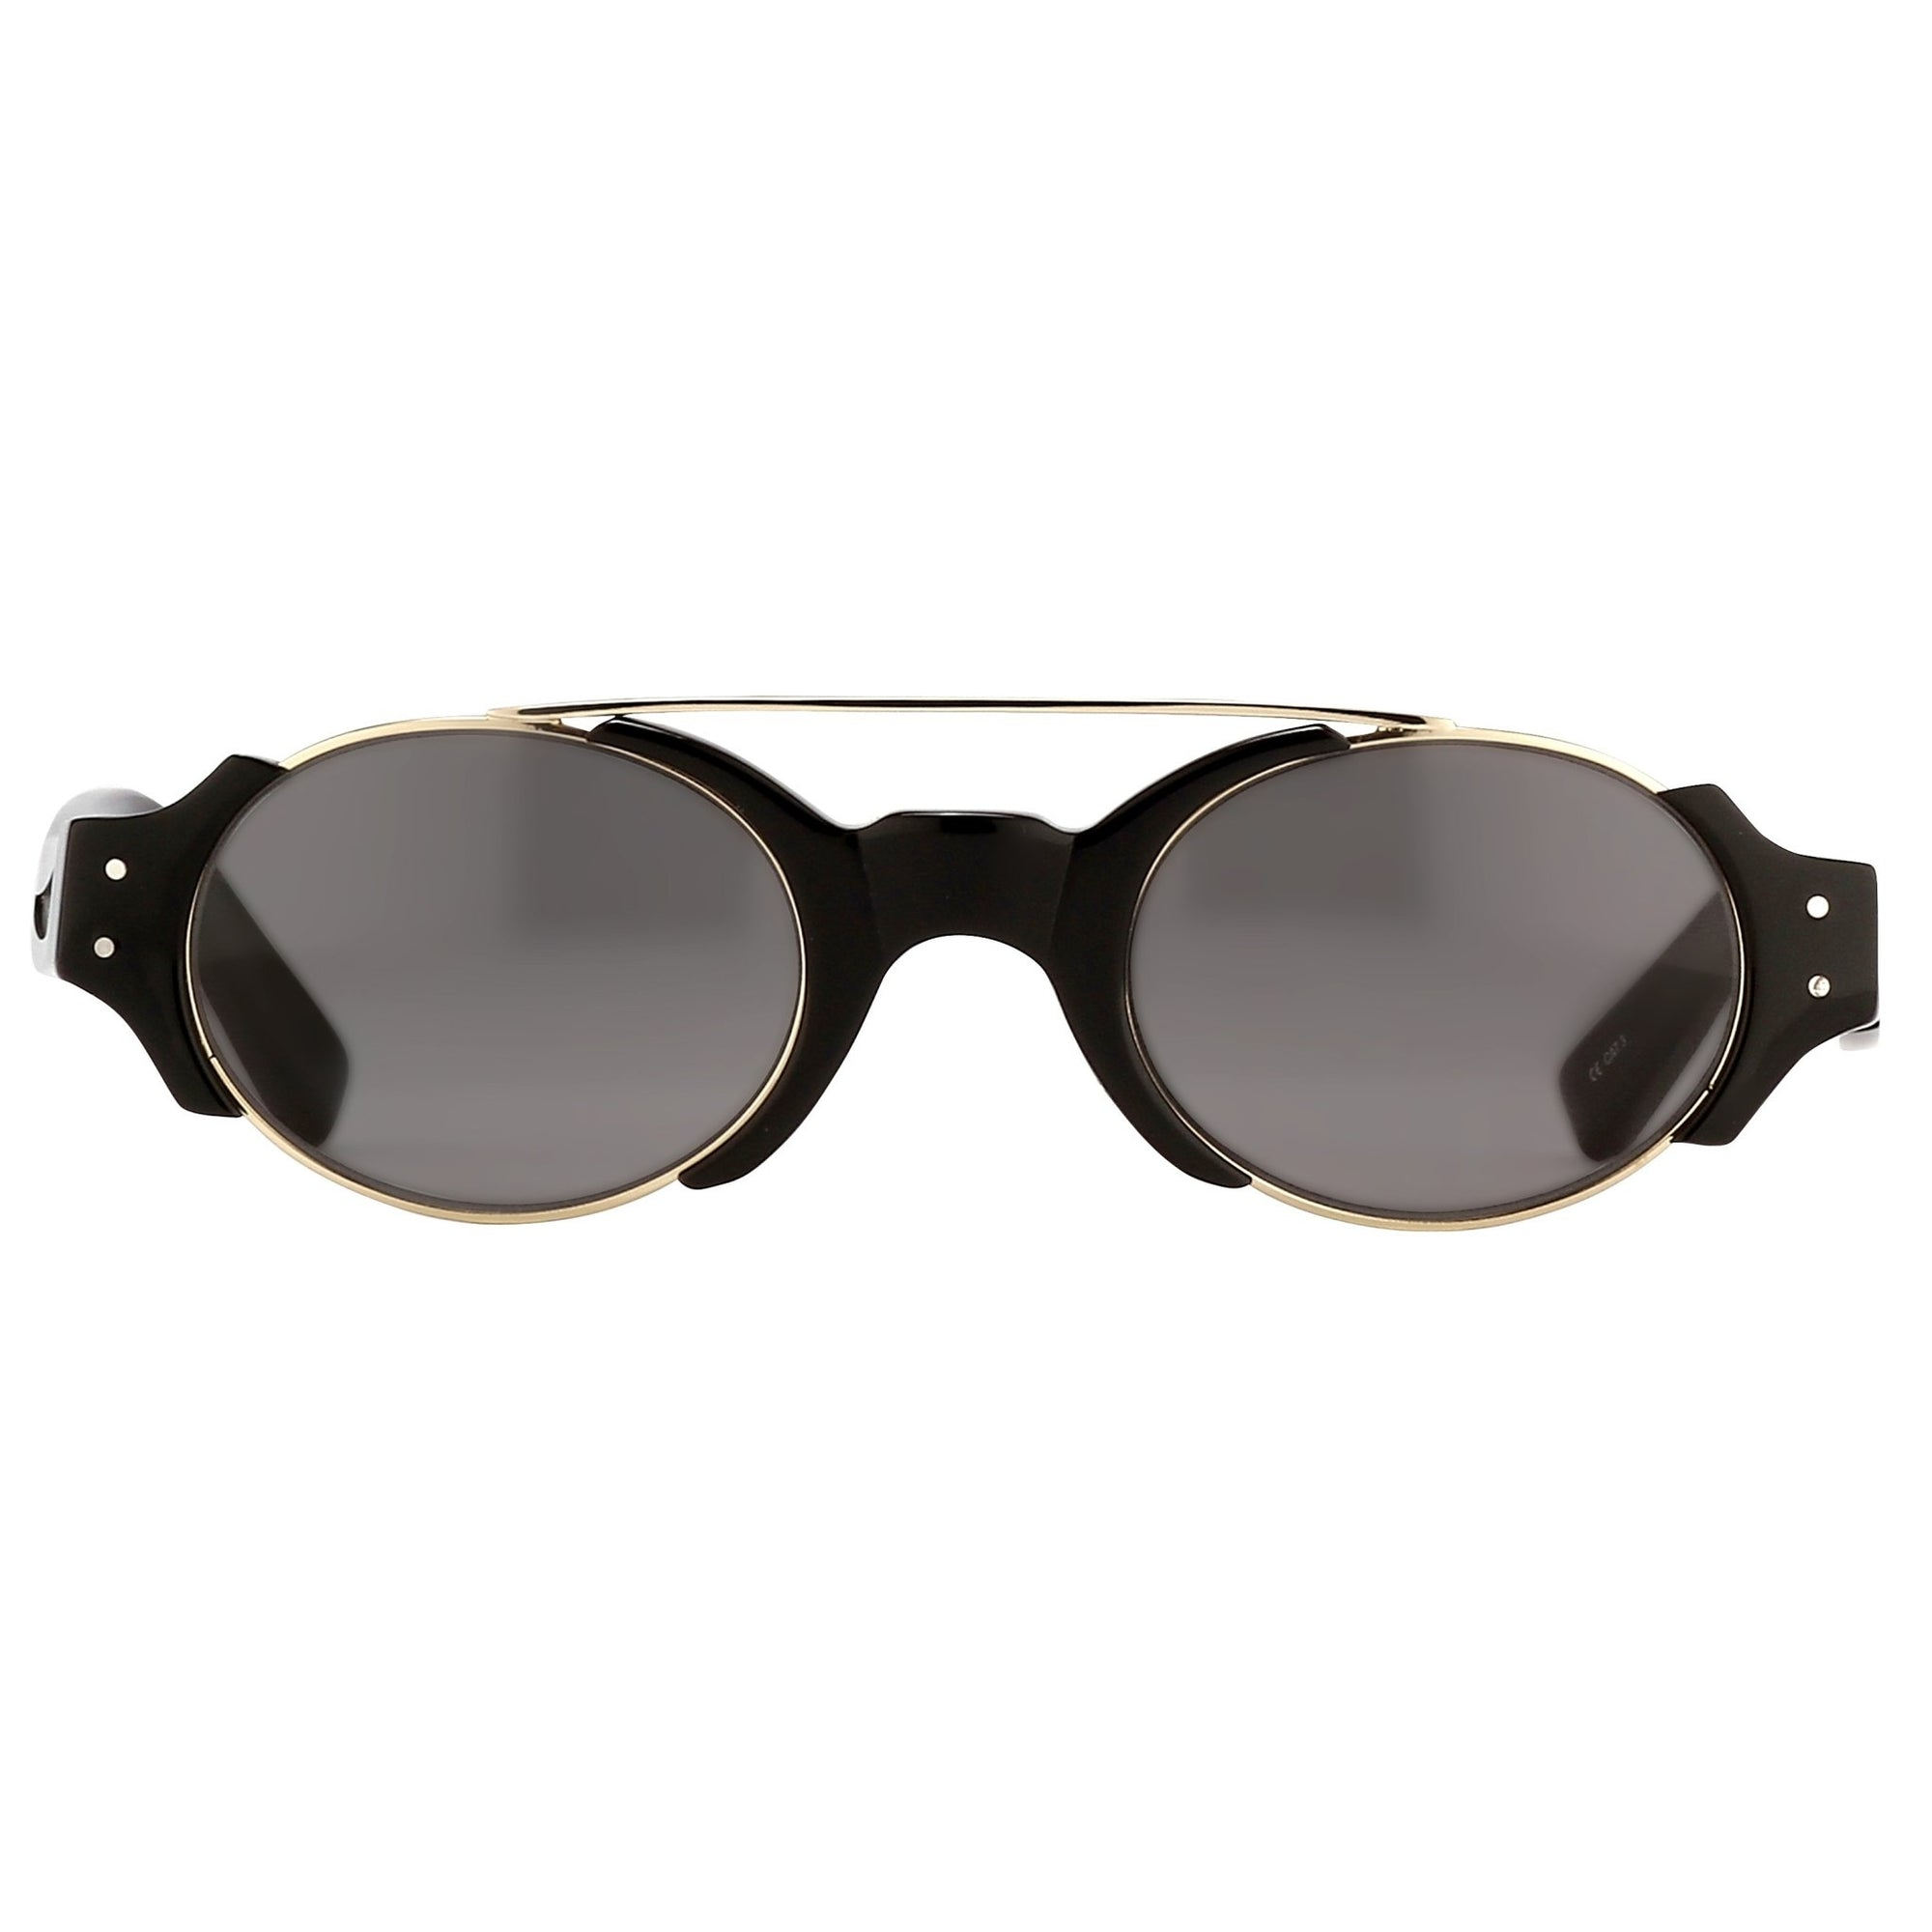 Erdem Women Sunglasses Black Light Gold with Grey Lenses Category 3 EDM8C2SUN - Watches & Crystals